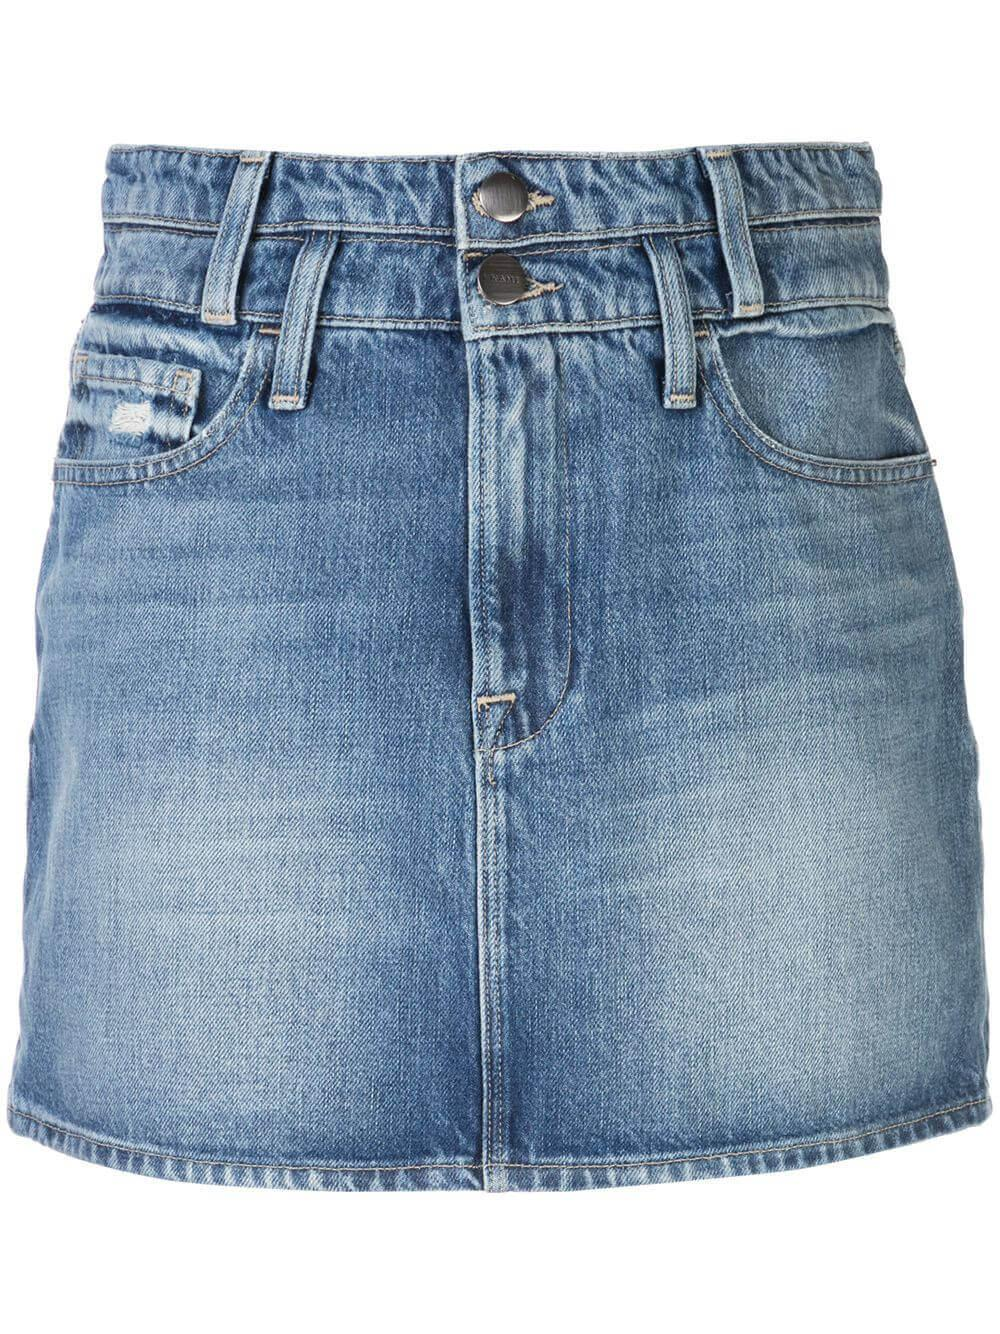 Le Mini Skirt With Double Waistband Item # LMSKDW385